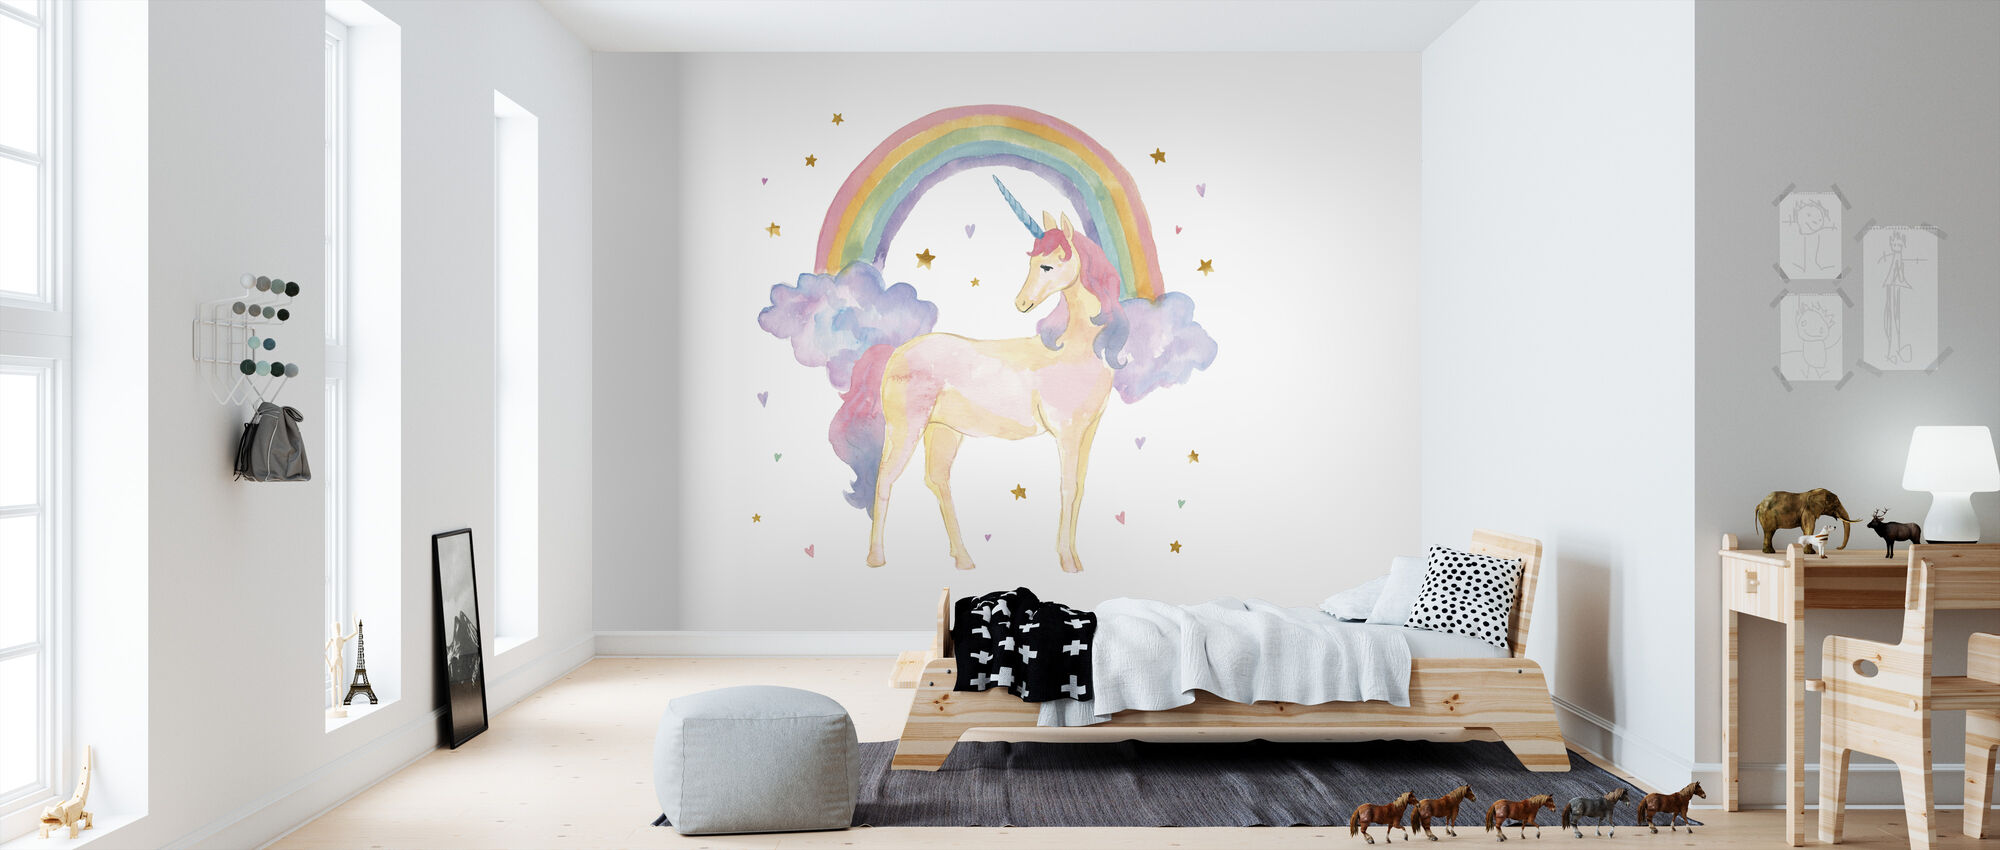 Magical Friends I - Wallpaper - Kids Room